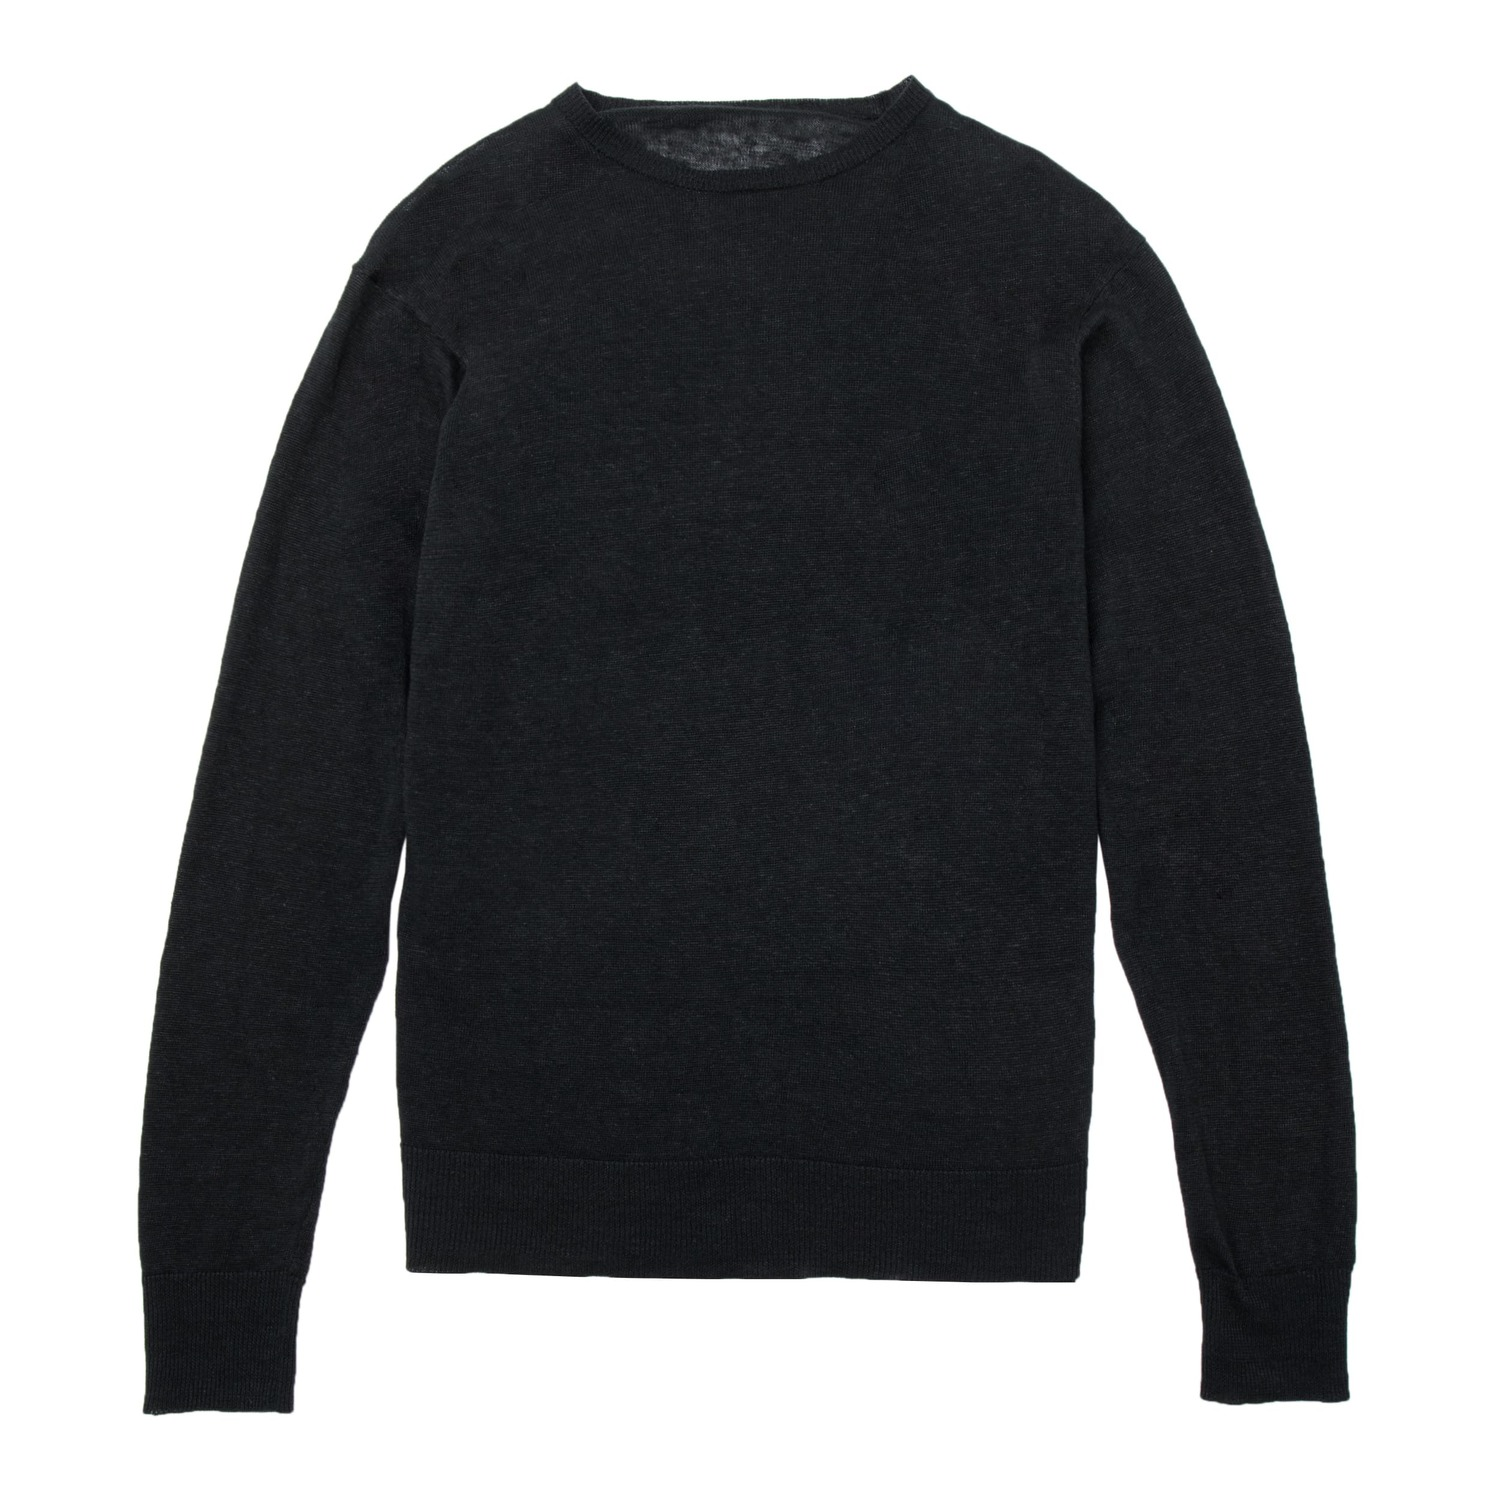 Mens Linen Crew Neck Sweater In Black $65 | DSTLD